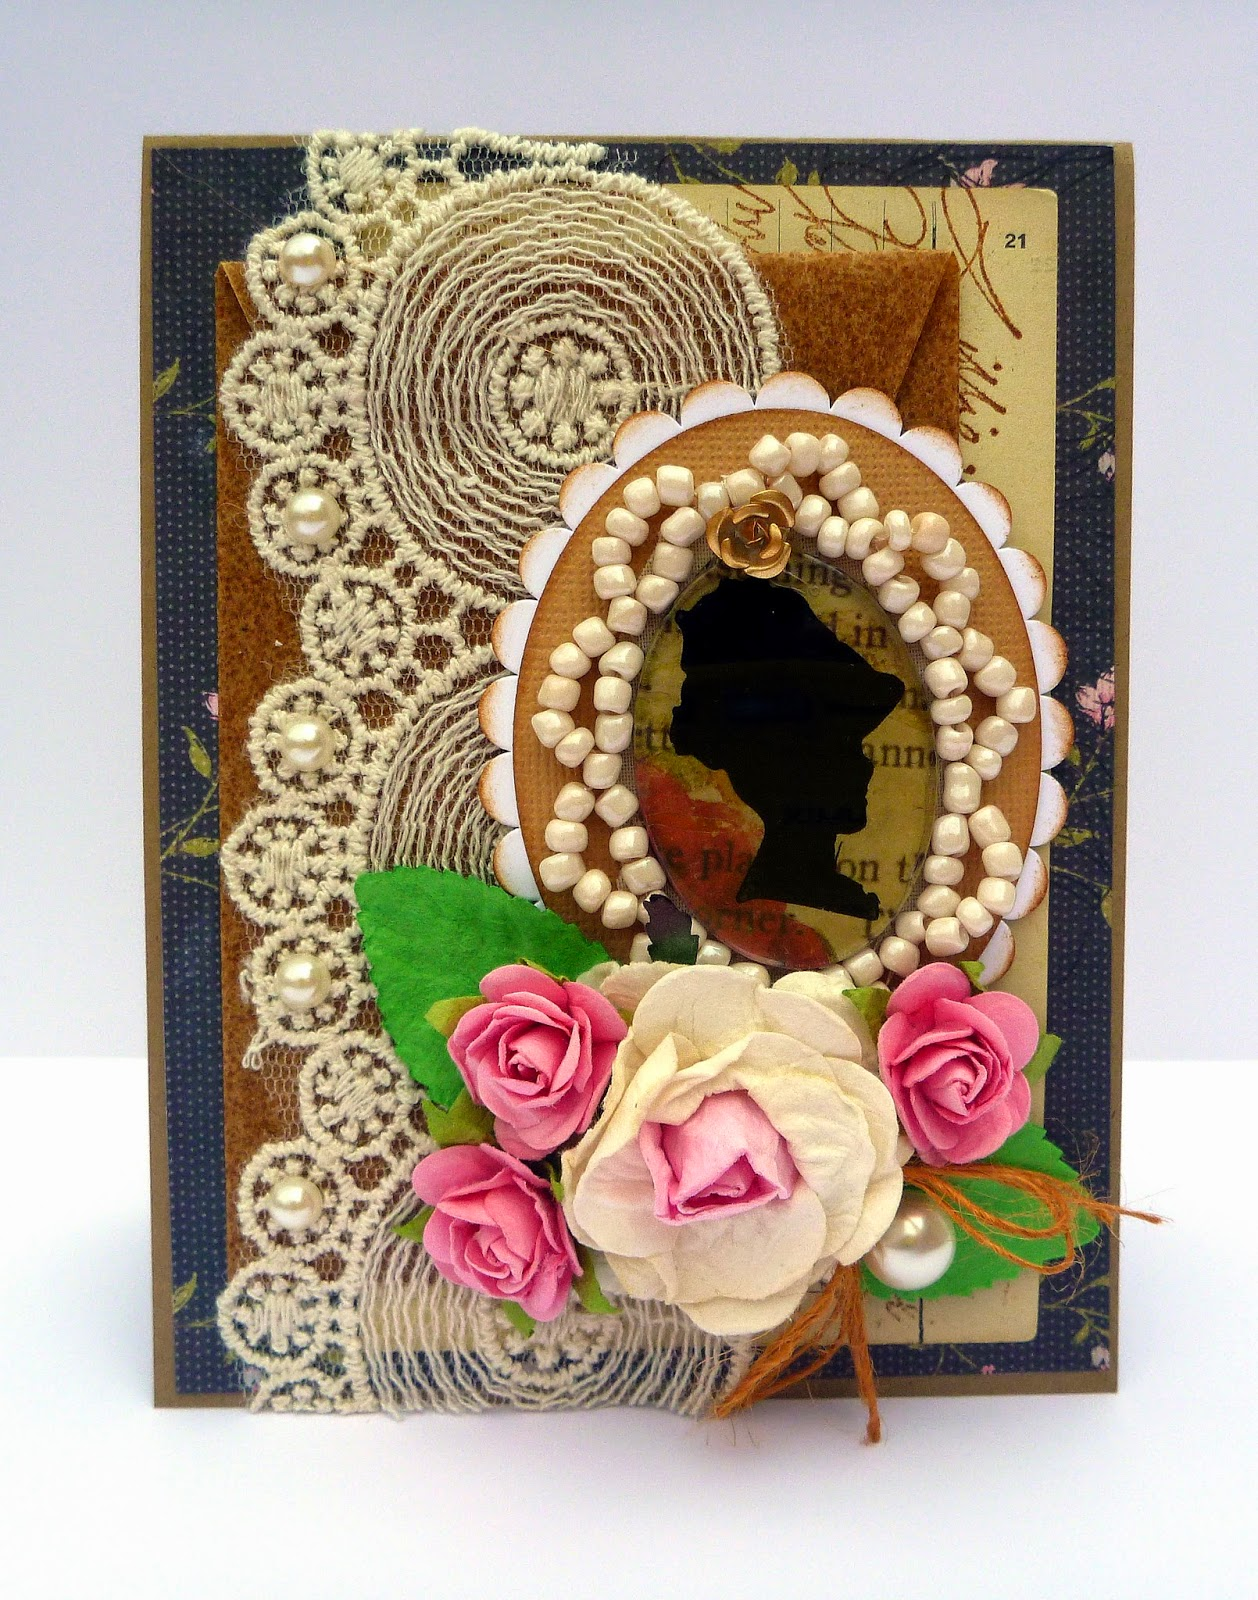 Devonshire Lady Beaded Silhouette Cabochon Romantic Card by Dana Tatar for Couture Creations